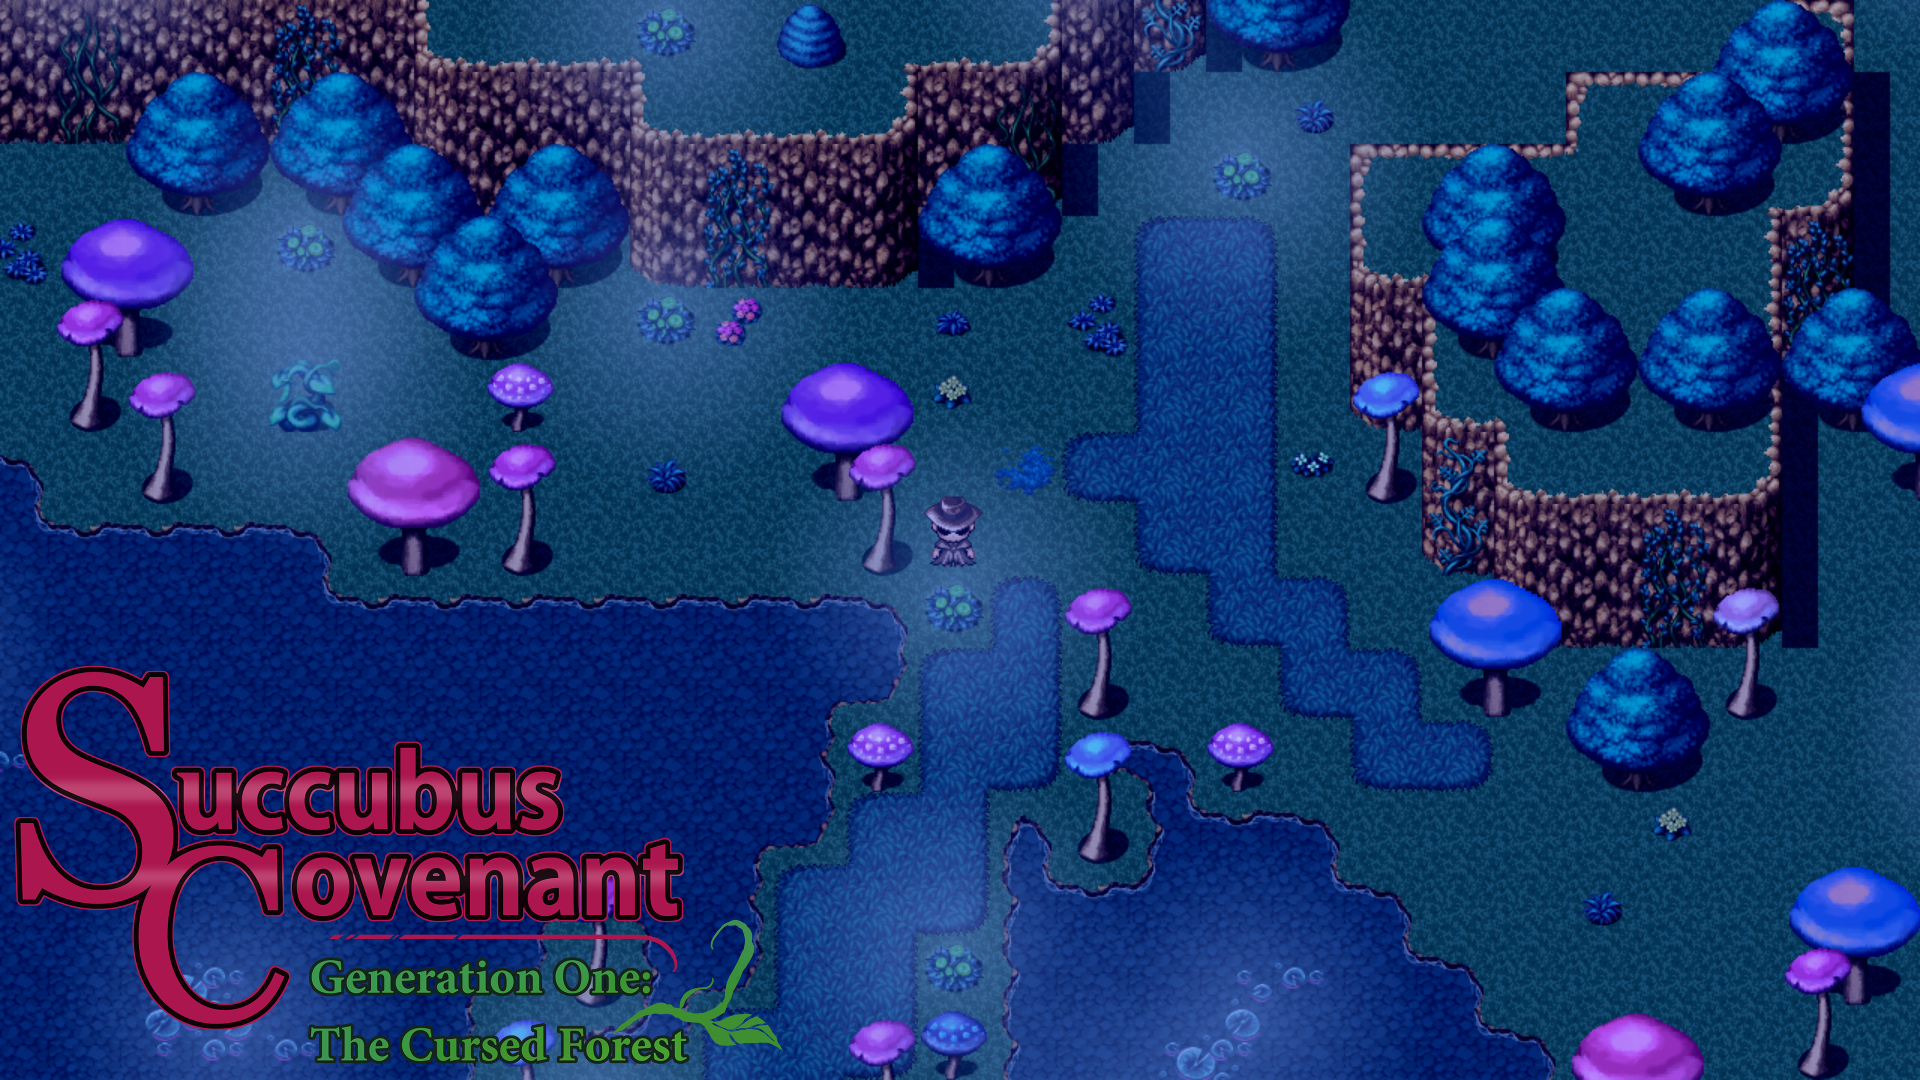 Succubus Covenant Generation One: The Cursed Forest screenshot 5